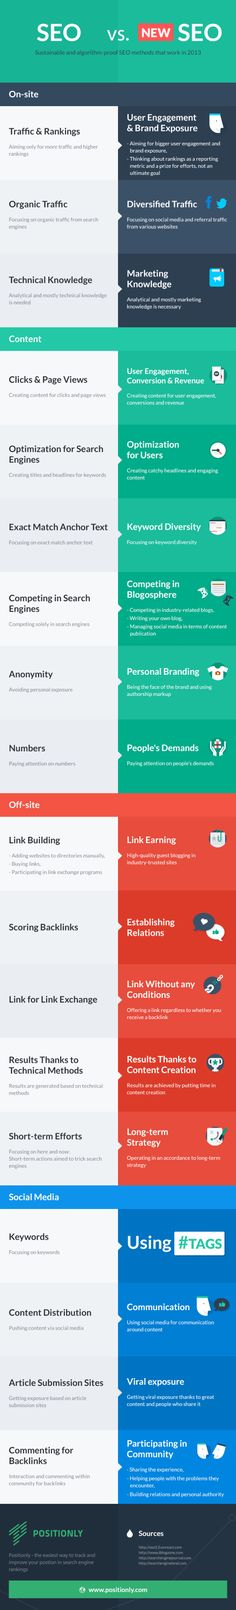 SEO Infographic - The New Rules of Search Engine Optimization. http://www.letsgetoptimized.com/